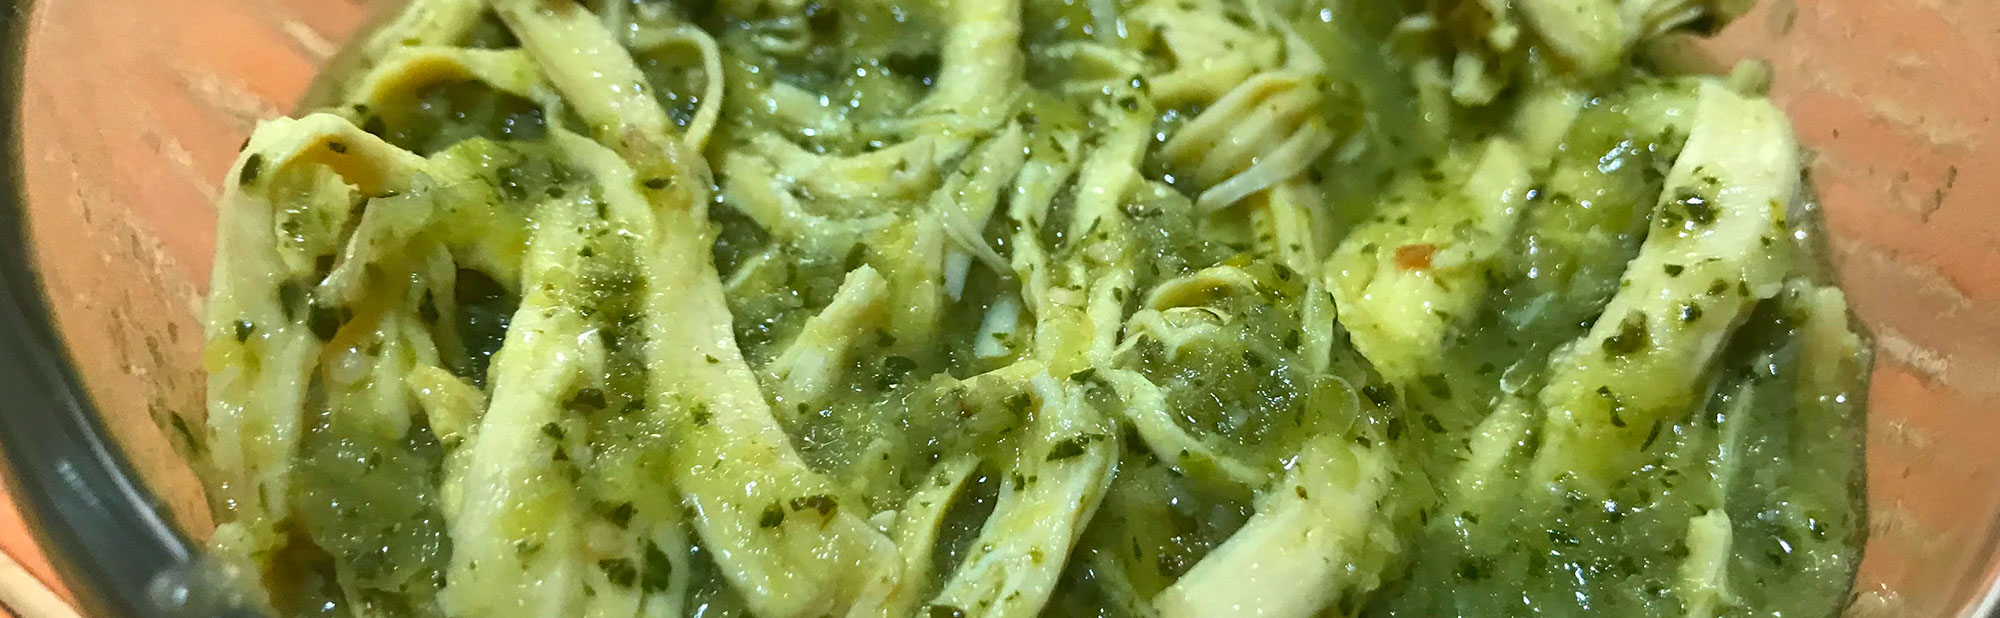 La Antojadera | Shredded Chicken in Green Sauce